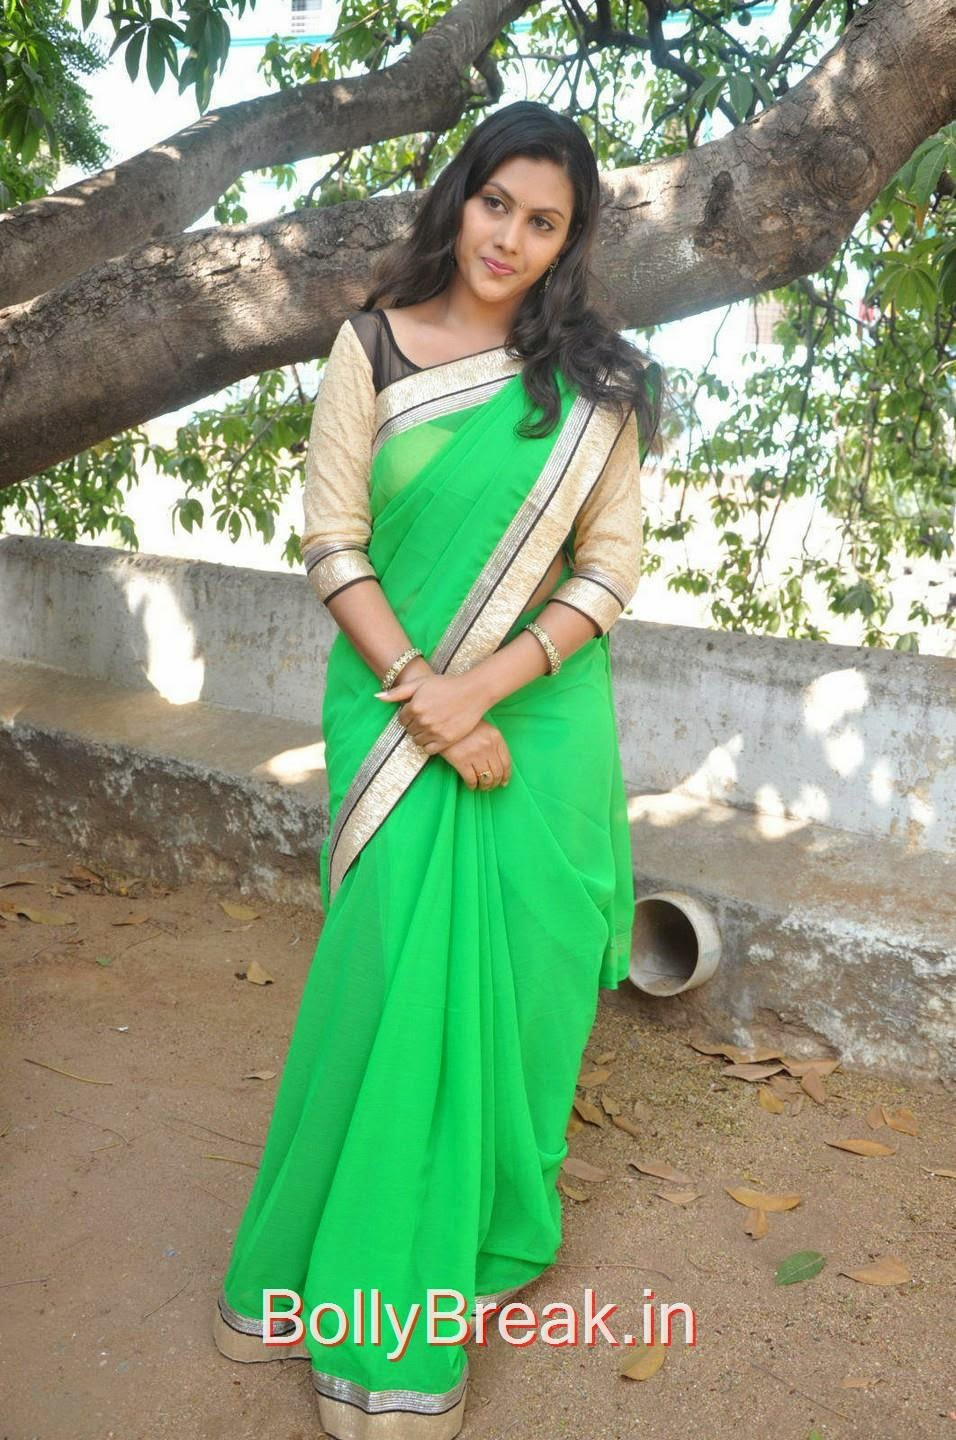 Priyanka Pics in Parrot Green Saree, Hot Pics Of Priyanka In Green Saree from SS Art Productions Production No 1 Movie